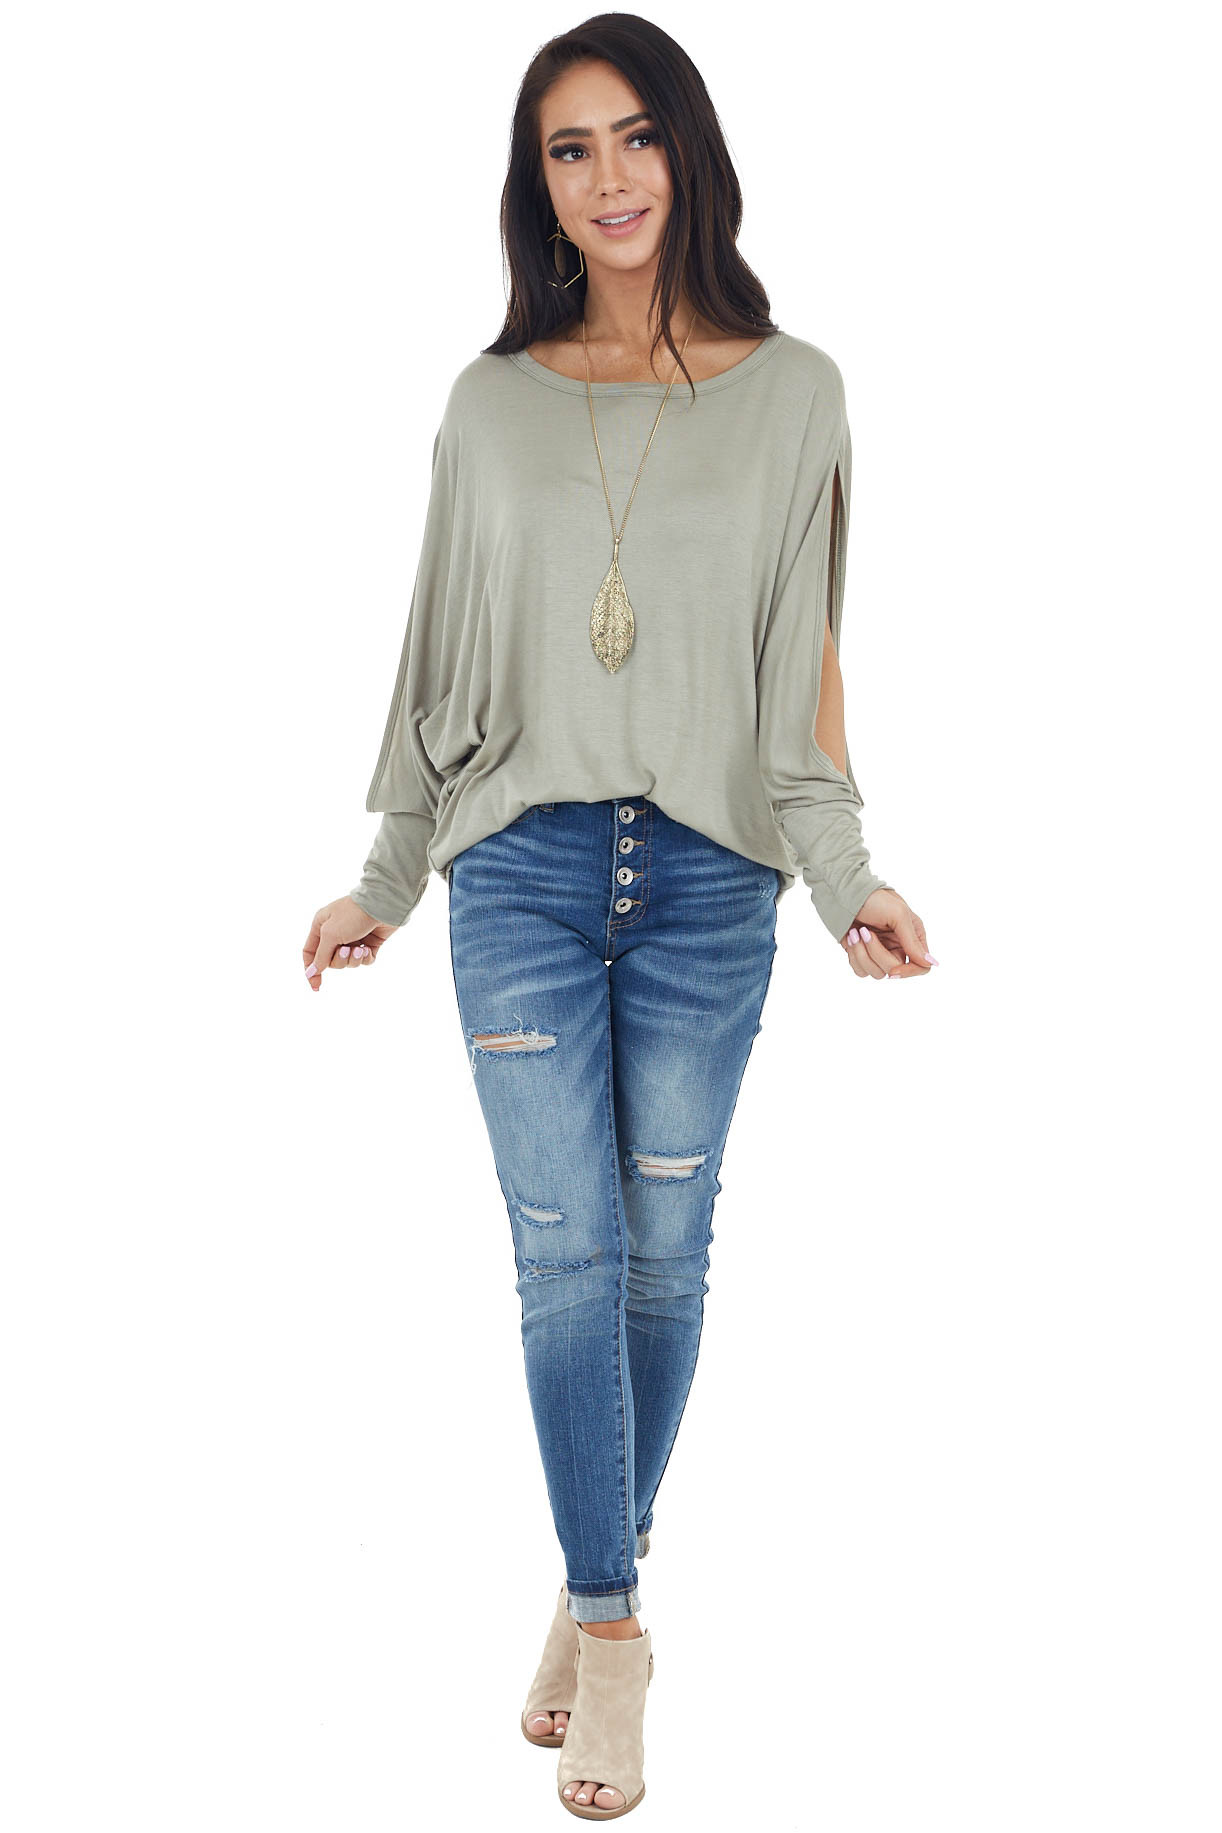 Sage Green Long Dolman Sleeve Knit Top with Cutout Detail